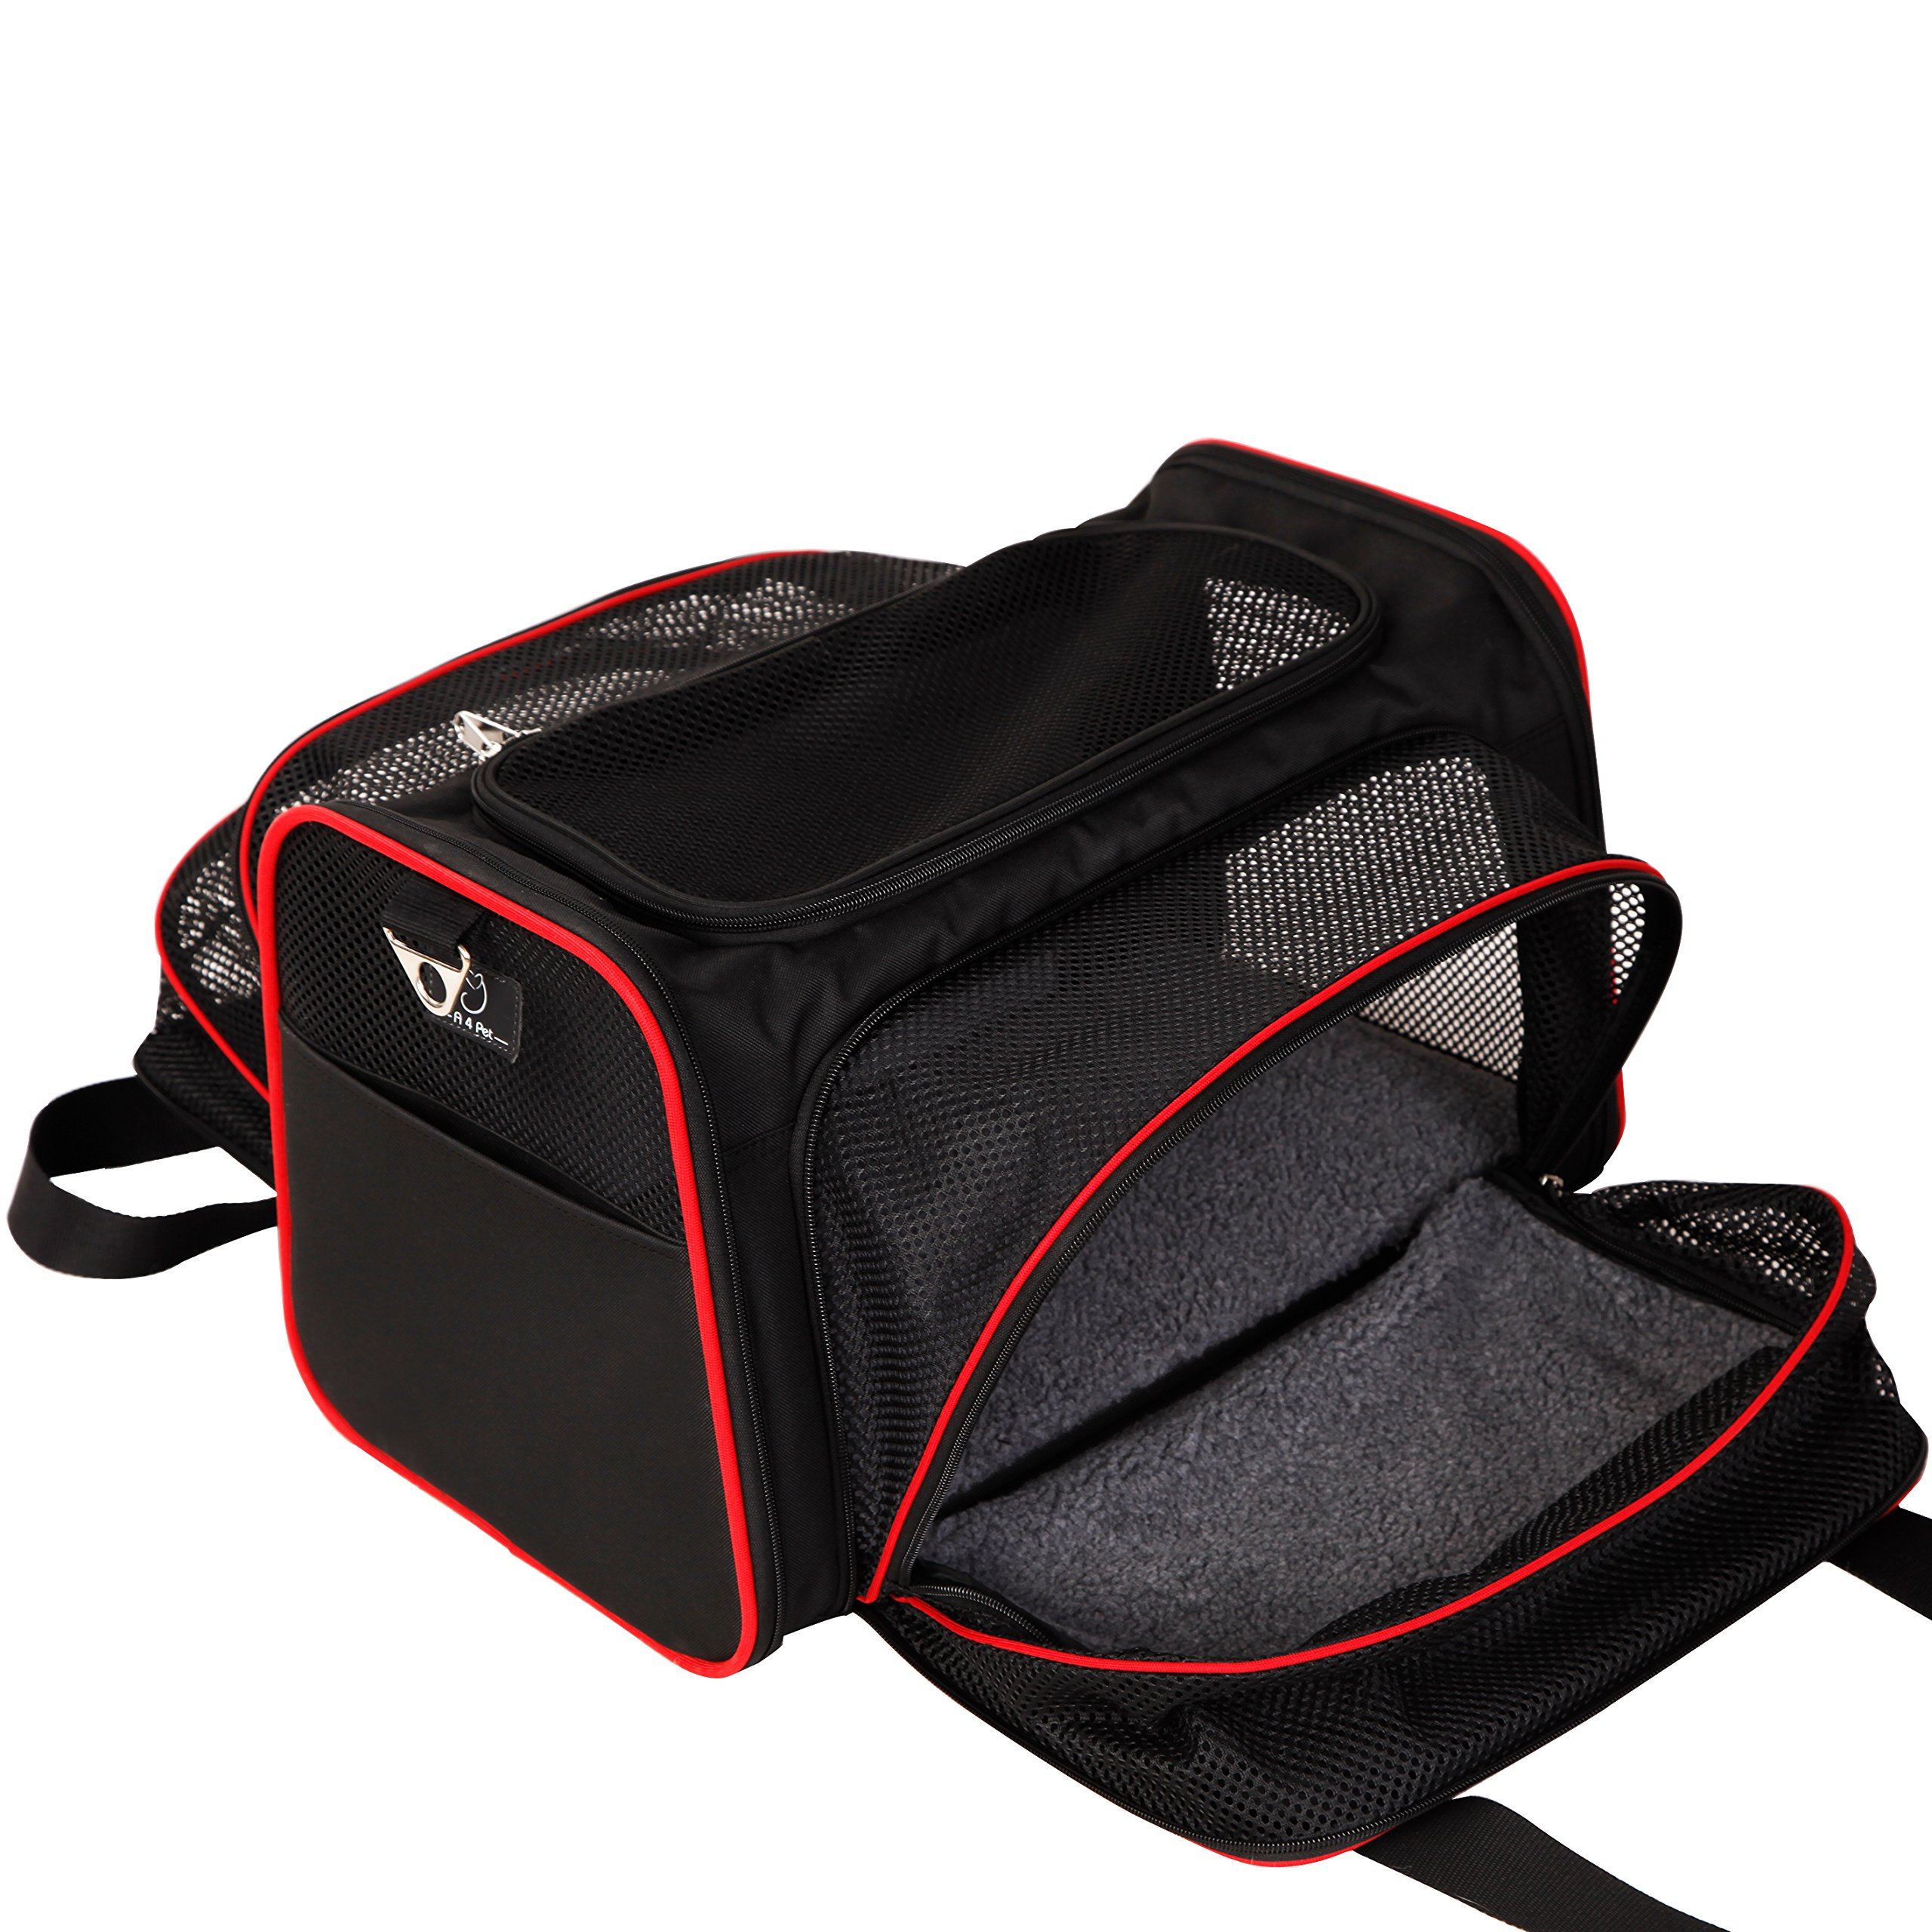 A4Pet Airline Approved Pet Carrier, Both Side Expandable, Top Loading Cats Small Dogs Puppy Small Animals by A4Pet (Image #3)